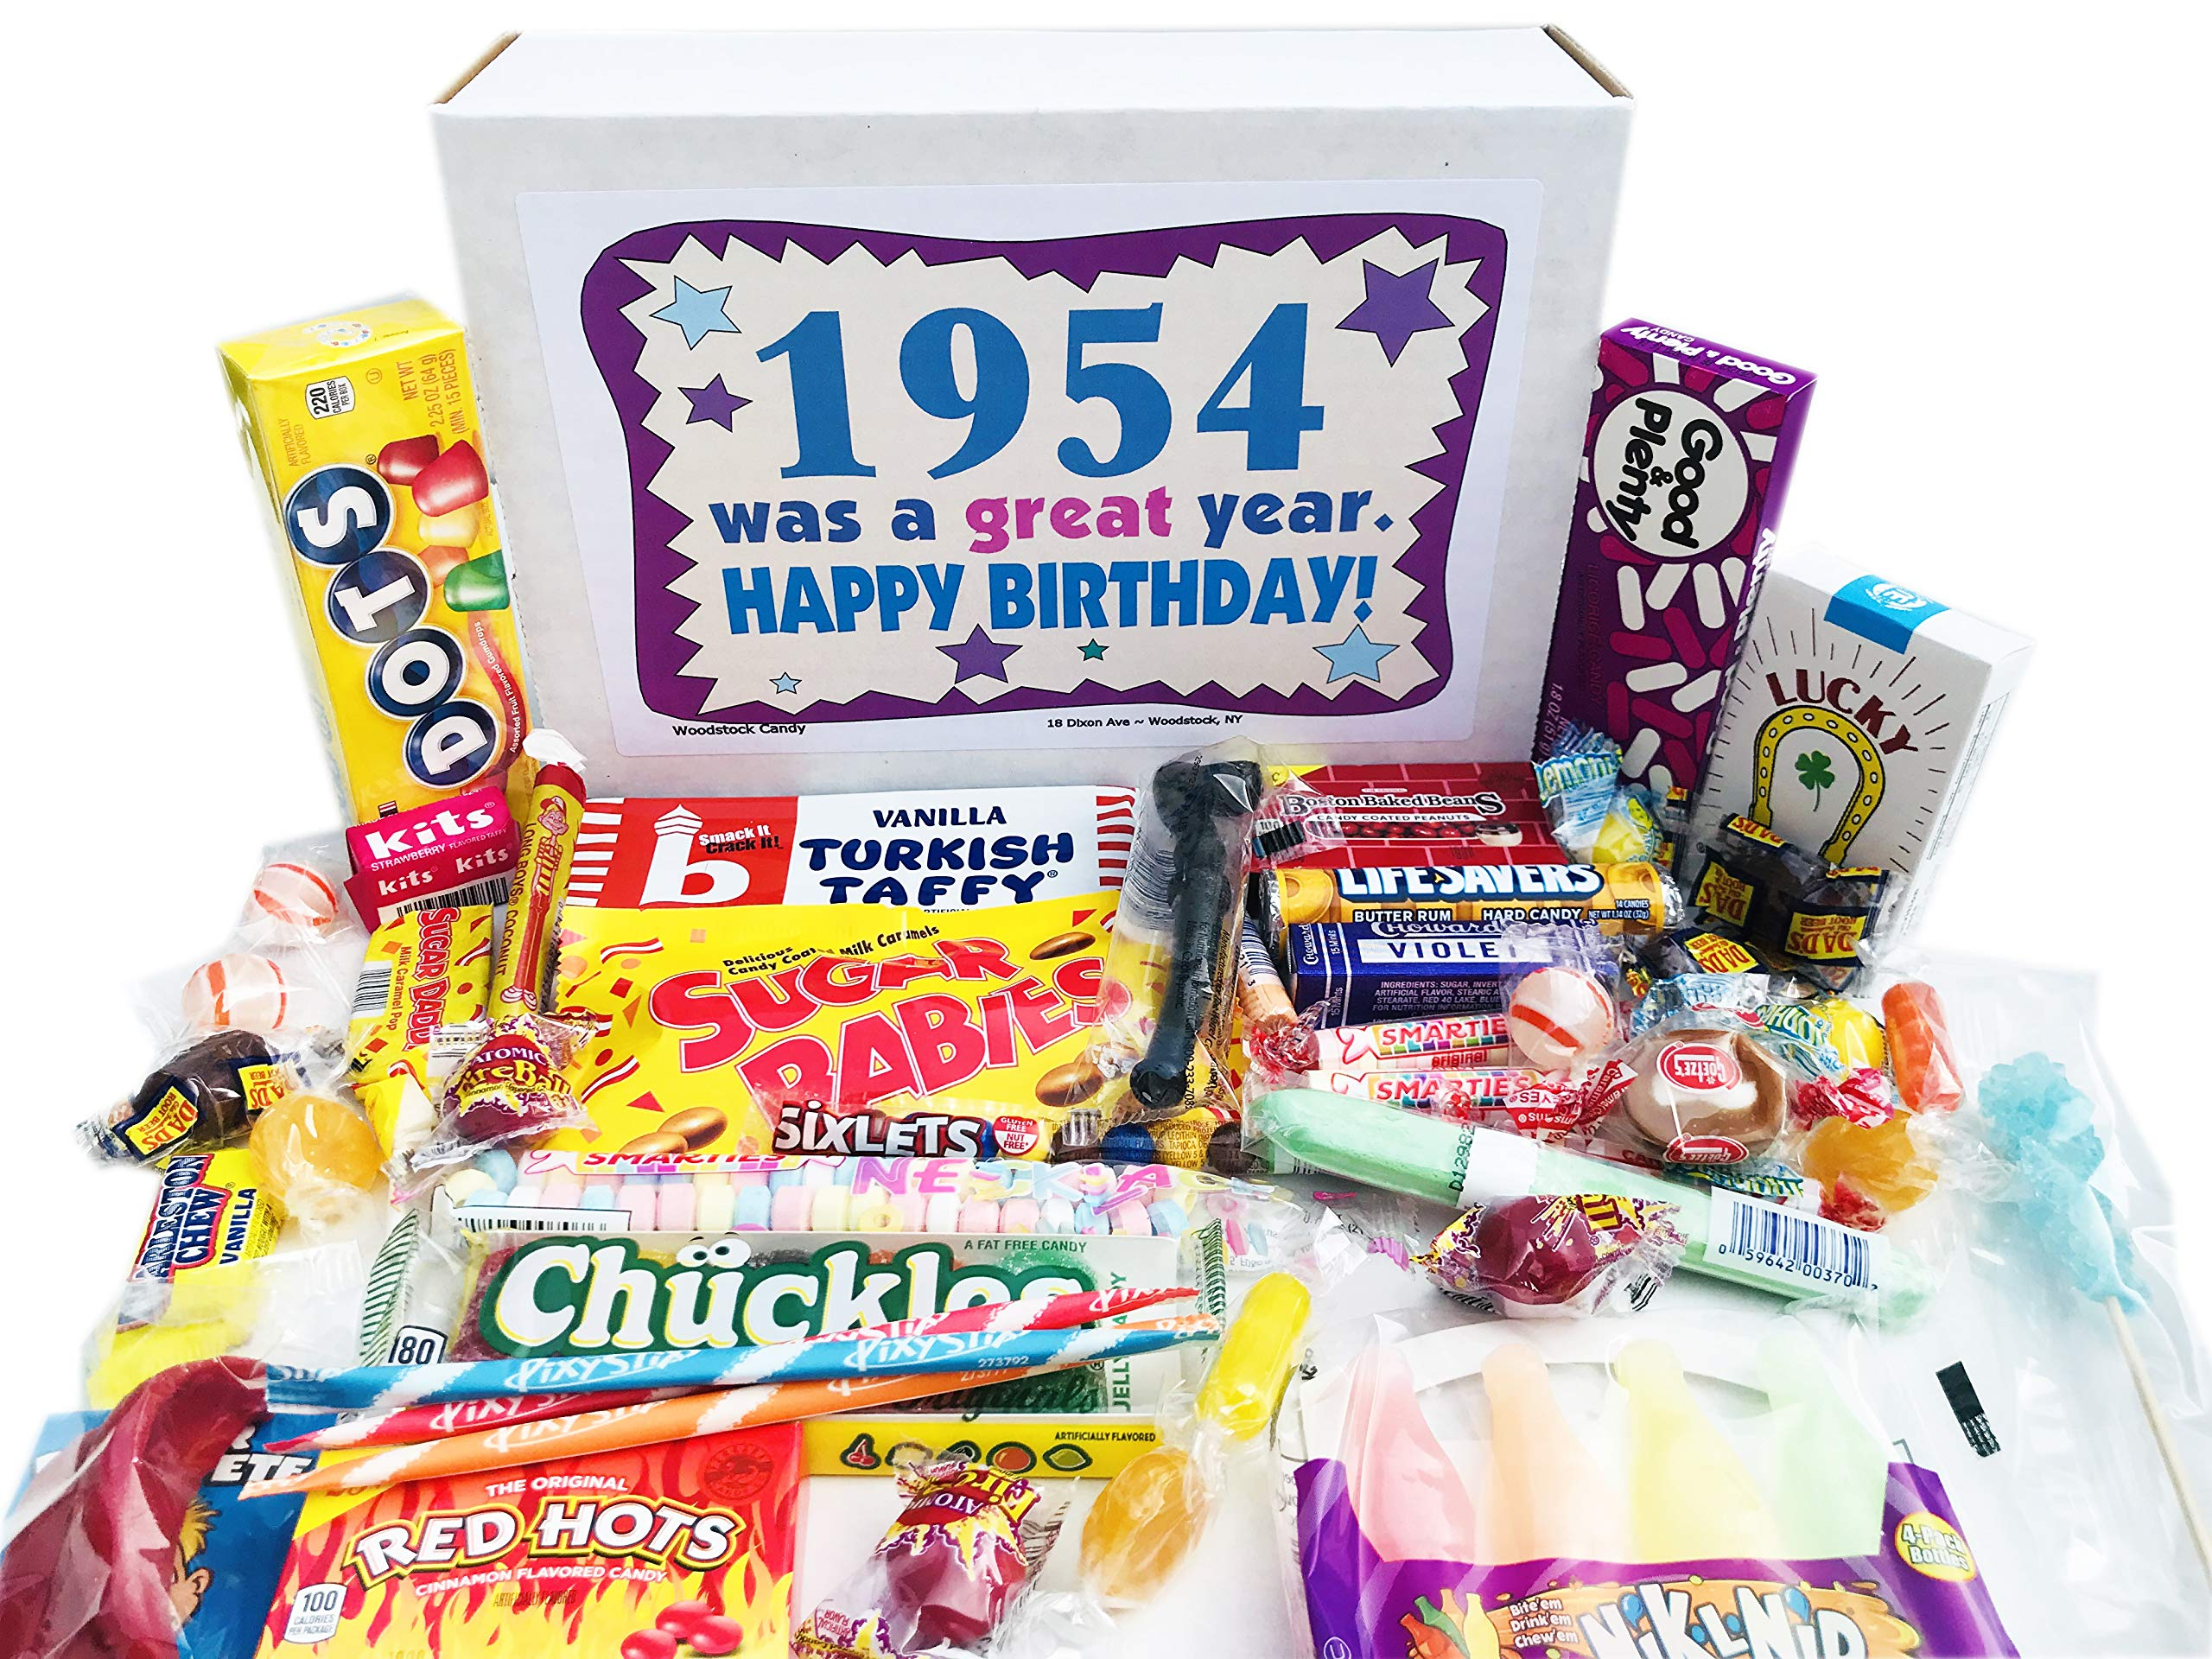 Woodstock Candy ~ 1954 65th Birthday Gift Box of Retro Vintage Candy Assortment from Childhood for 65 Year Old Man or Woman Born 1954 Jr